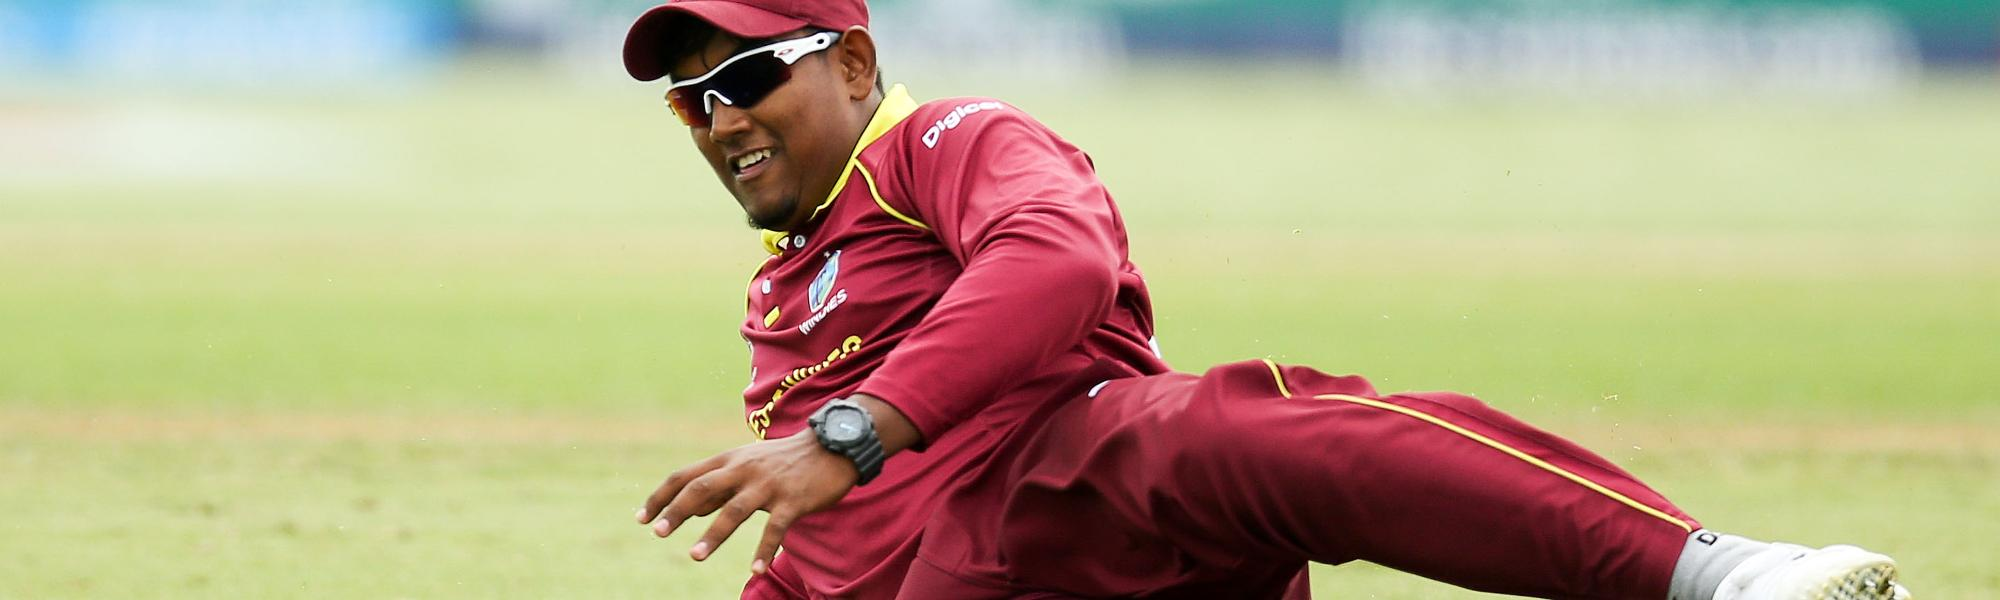 Bhaskar Yadram of the West Indies fields